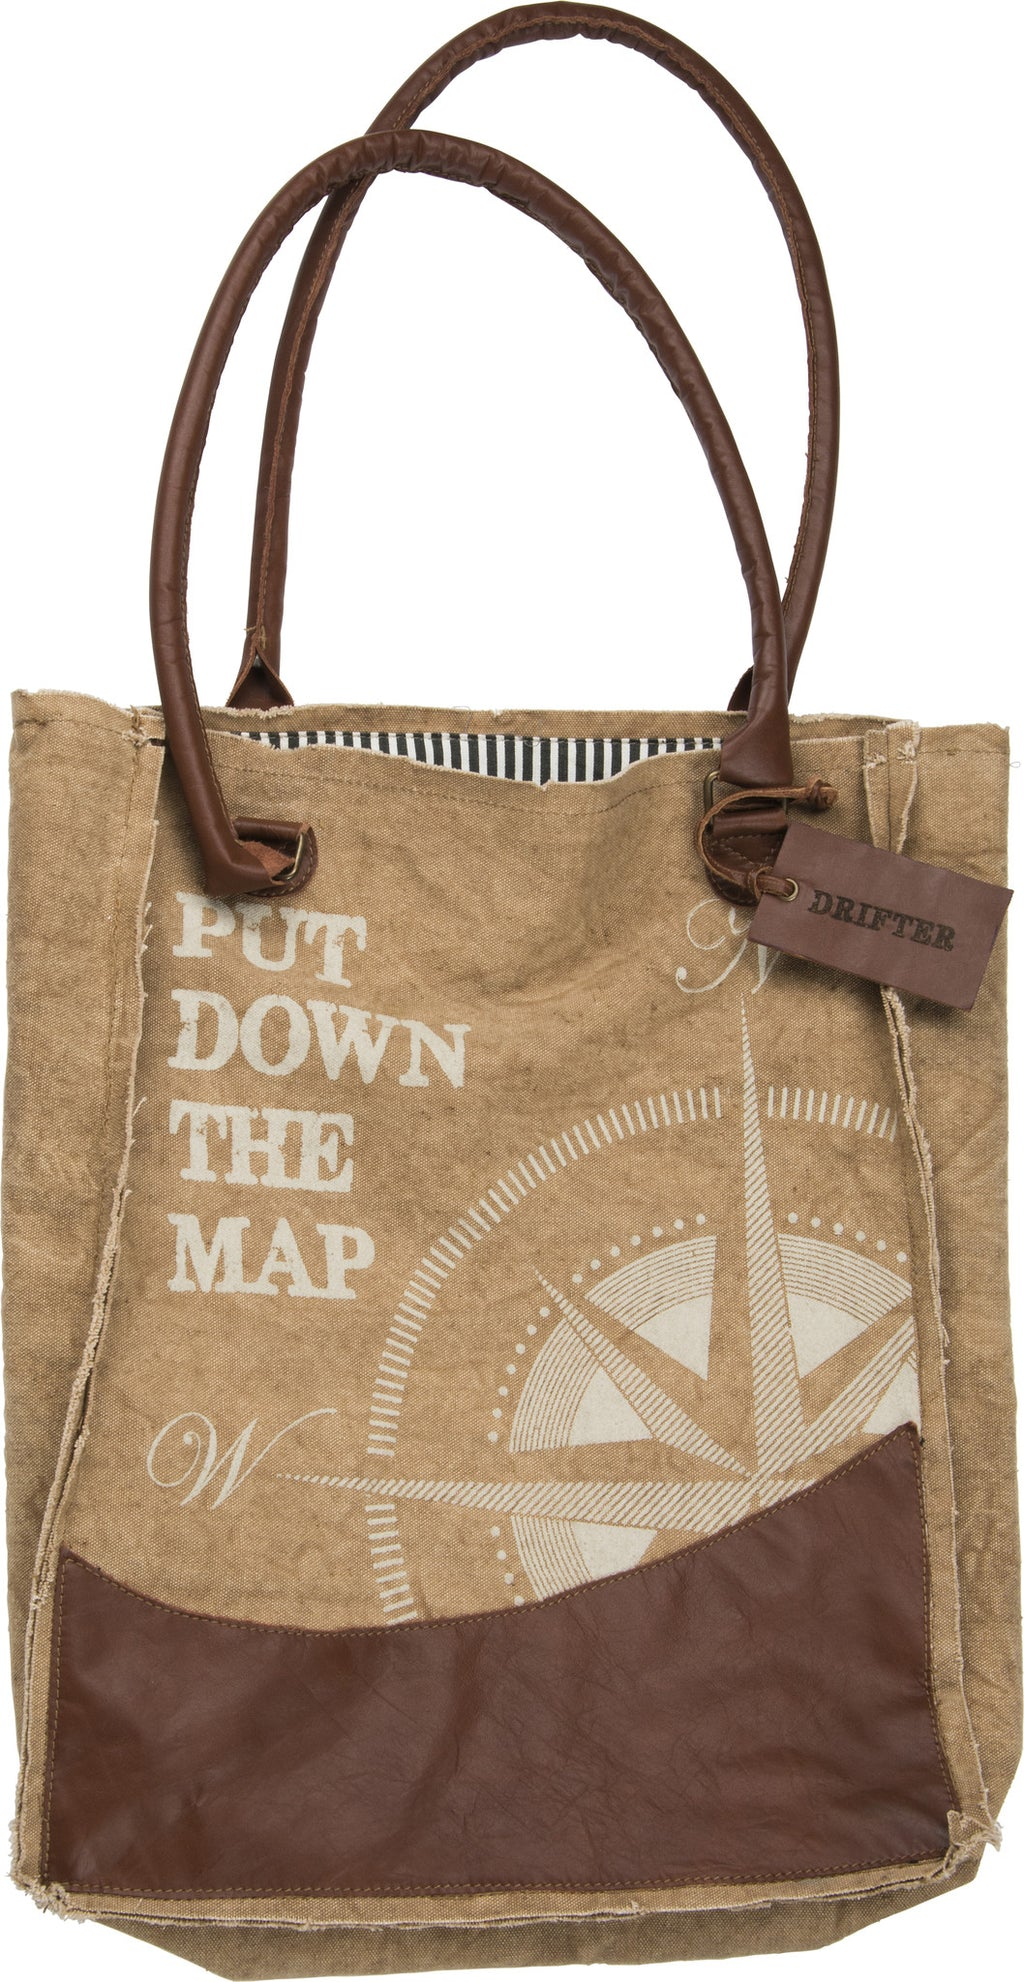 Put Down The Map - Canvas Bag